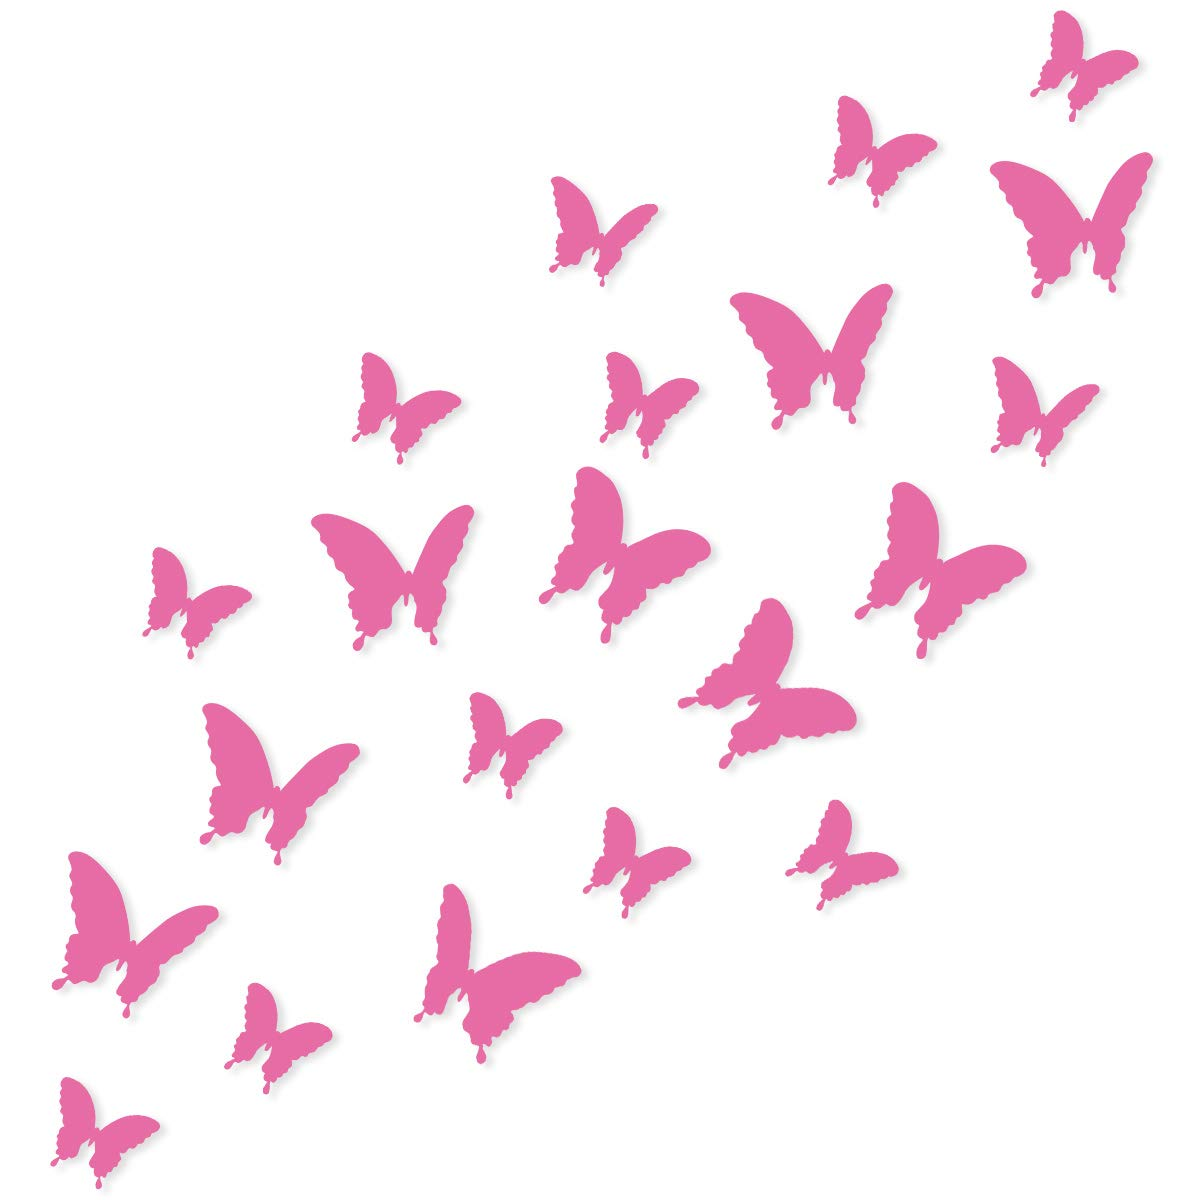 Wandkings 3D Style Butterflies in PINK for wall decoration, 12 PCS in a set with adhesive fixing dots 6098375